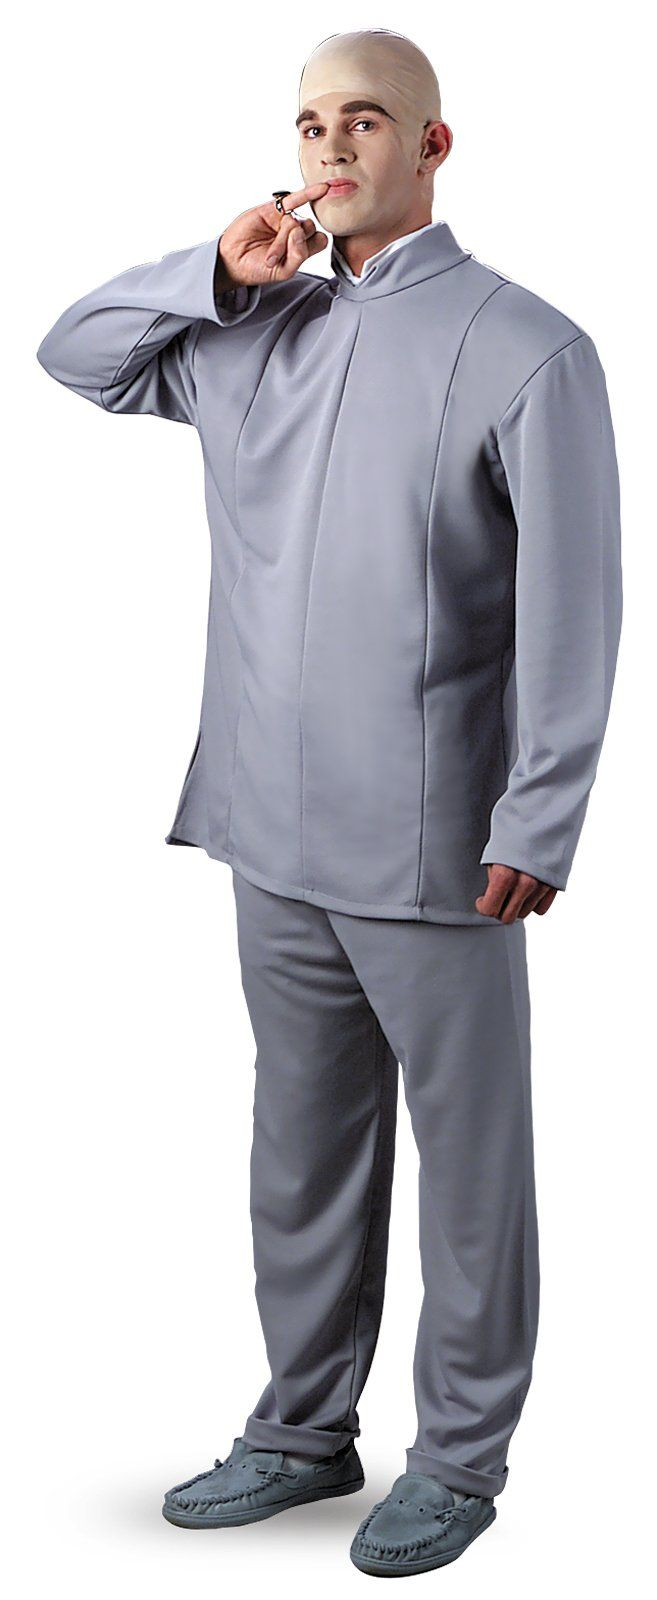 Austin Powers Dr. Evil Deluxe Plus Adult Costume from BuyCostumes.com